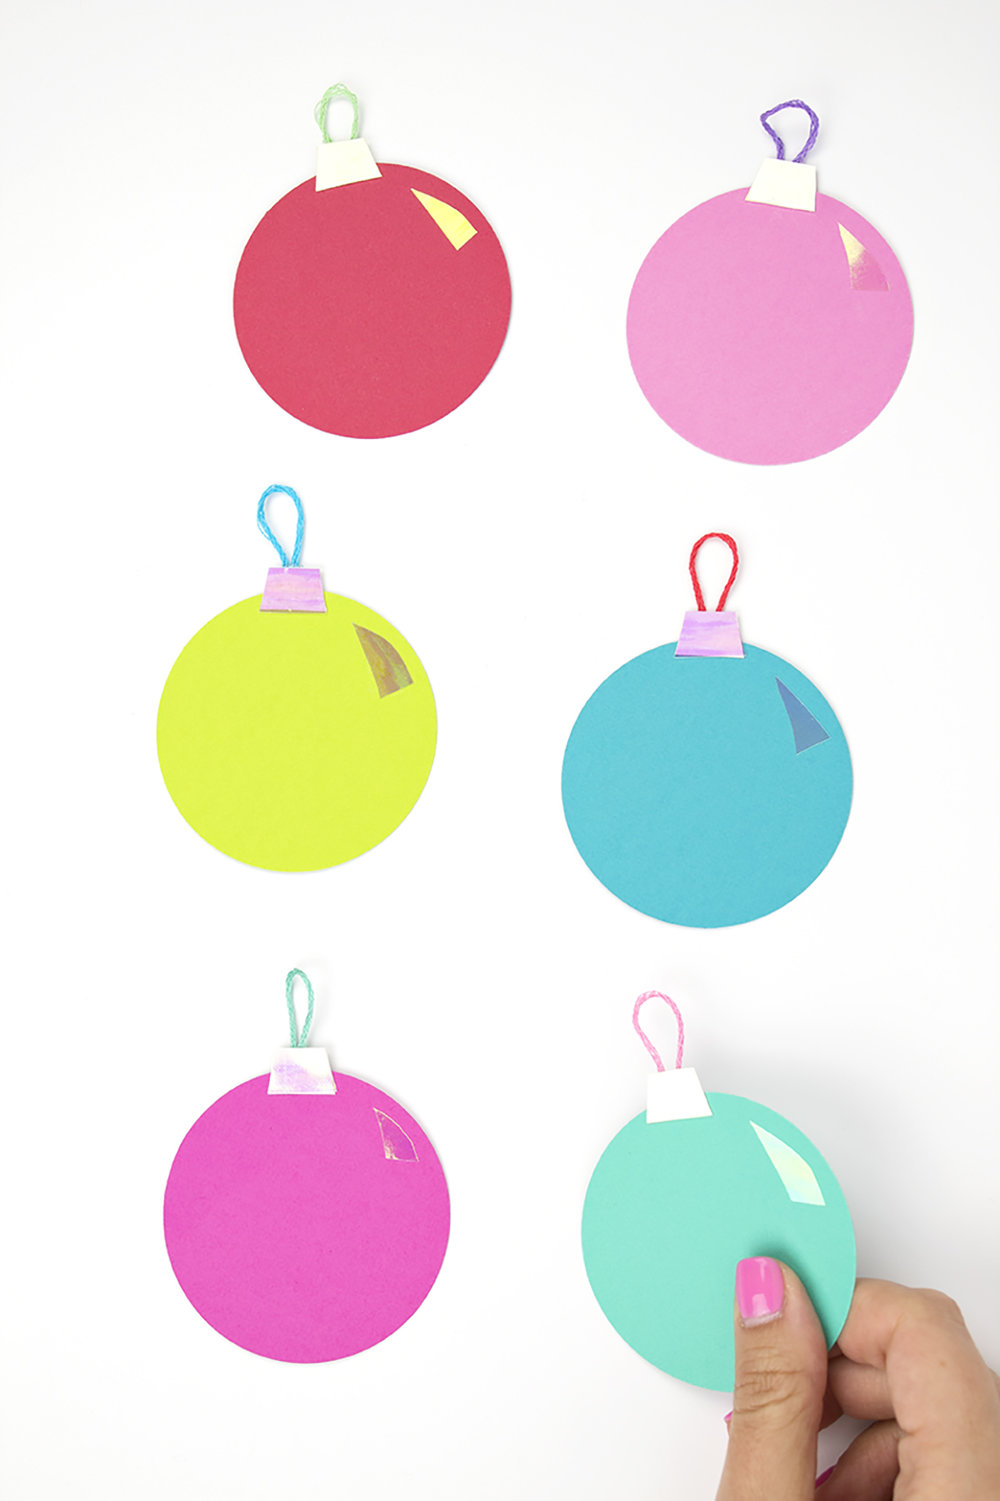 The iridescent effect on these ornaments is super 90's, while also being modern. Holographic items are coming back! Give them to all your friends who love the 90's as much as you do! Click for the DIY.